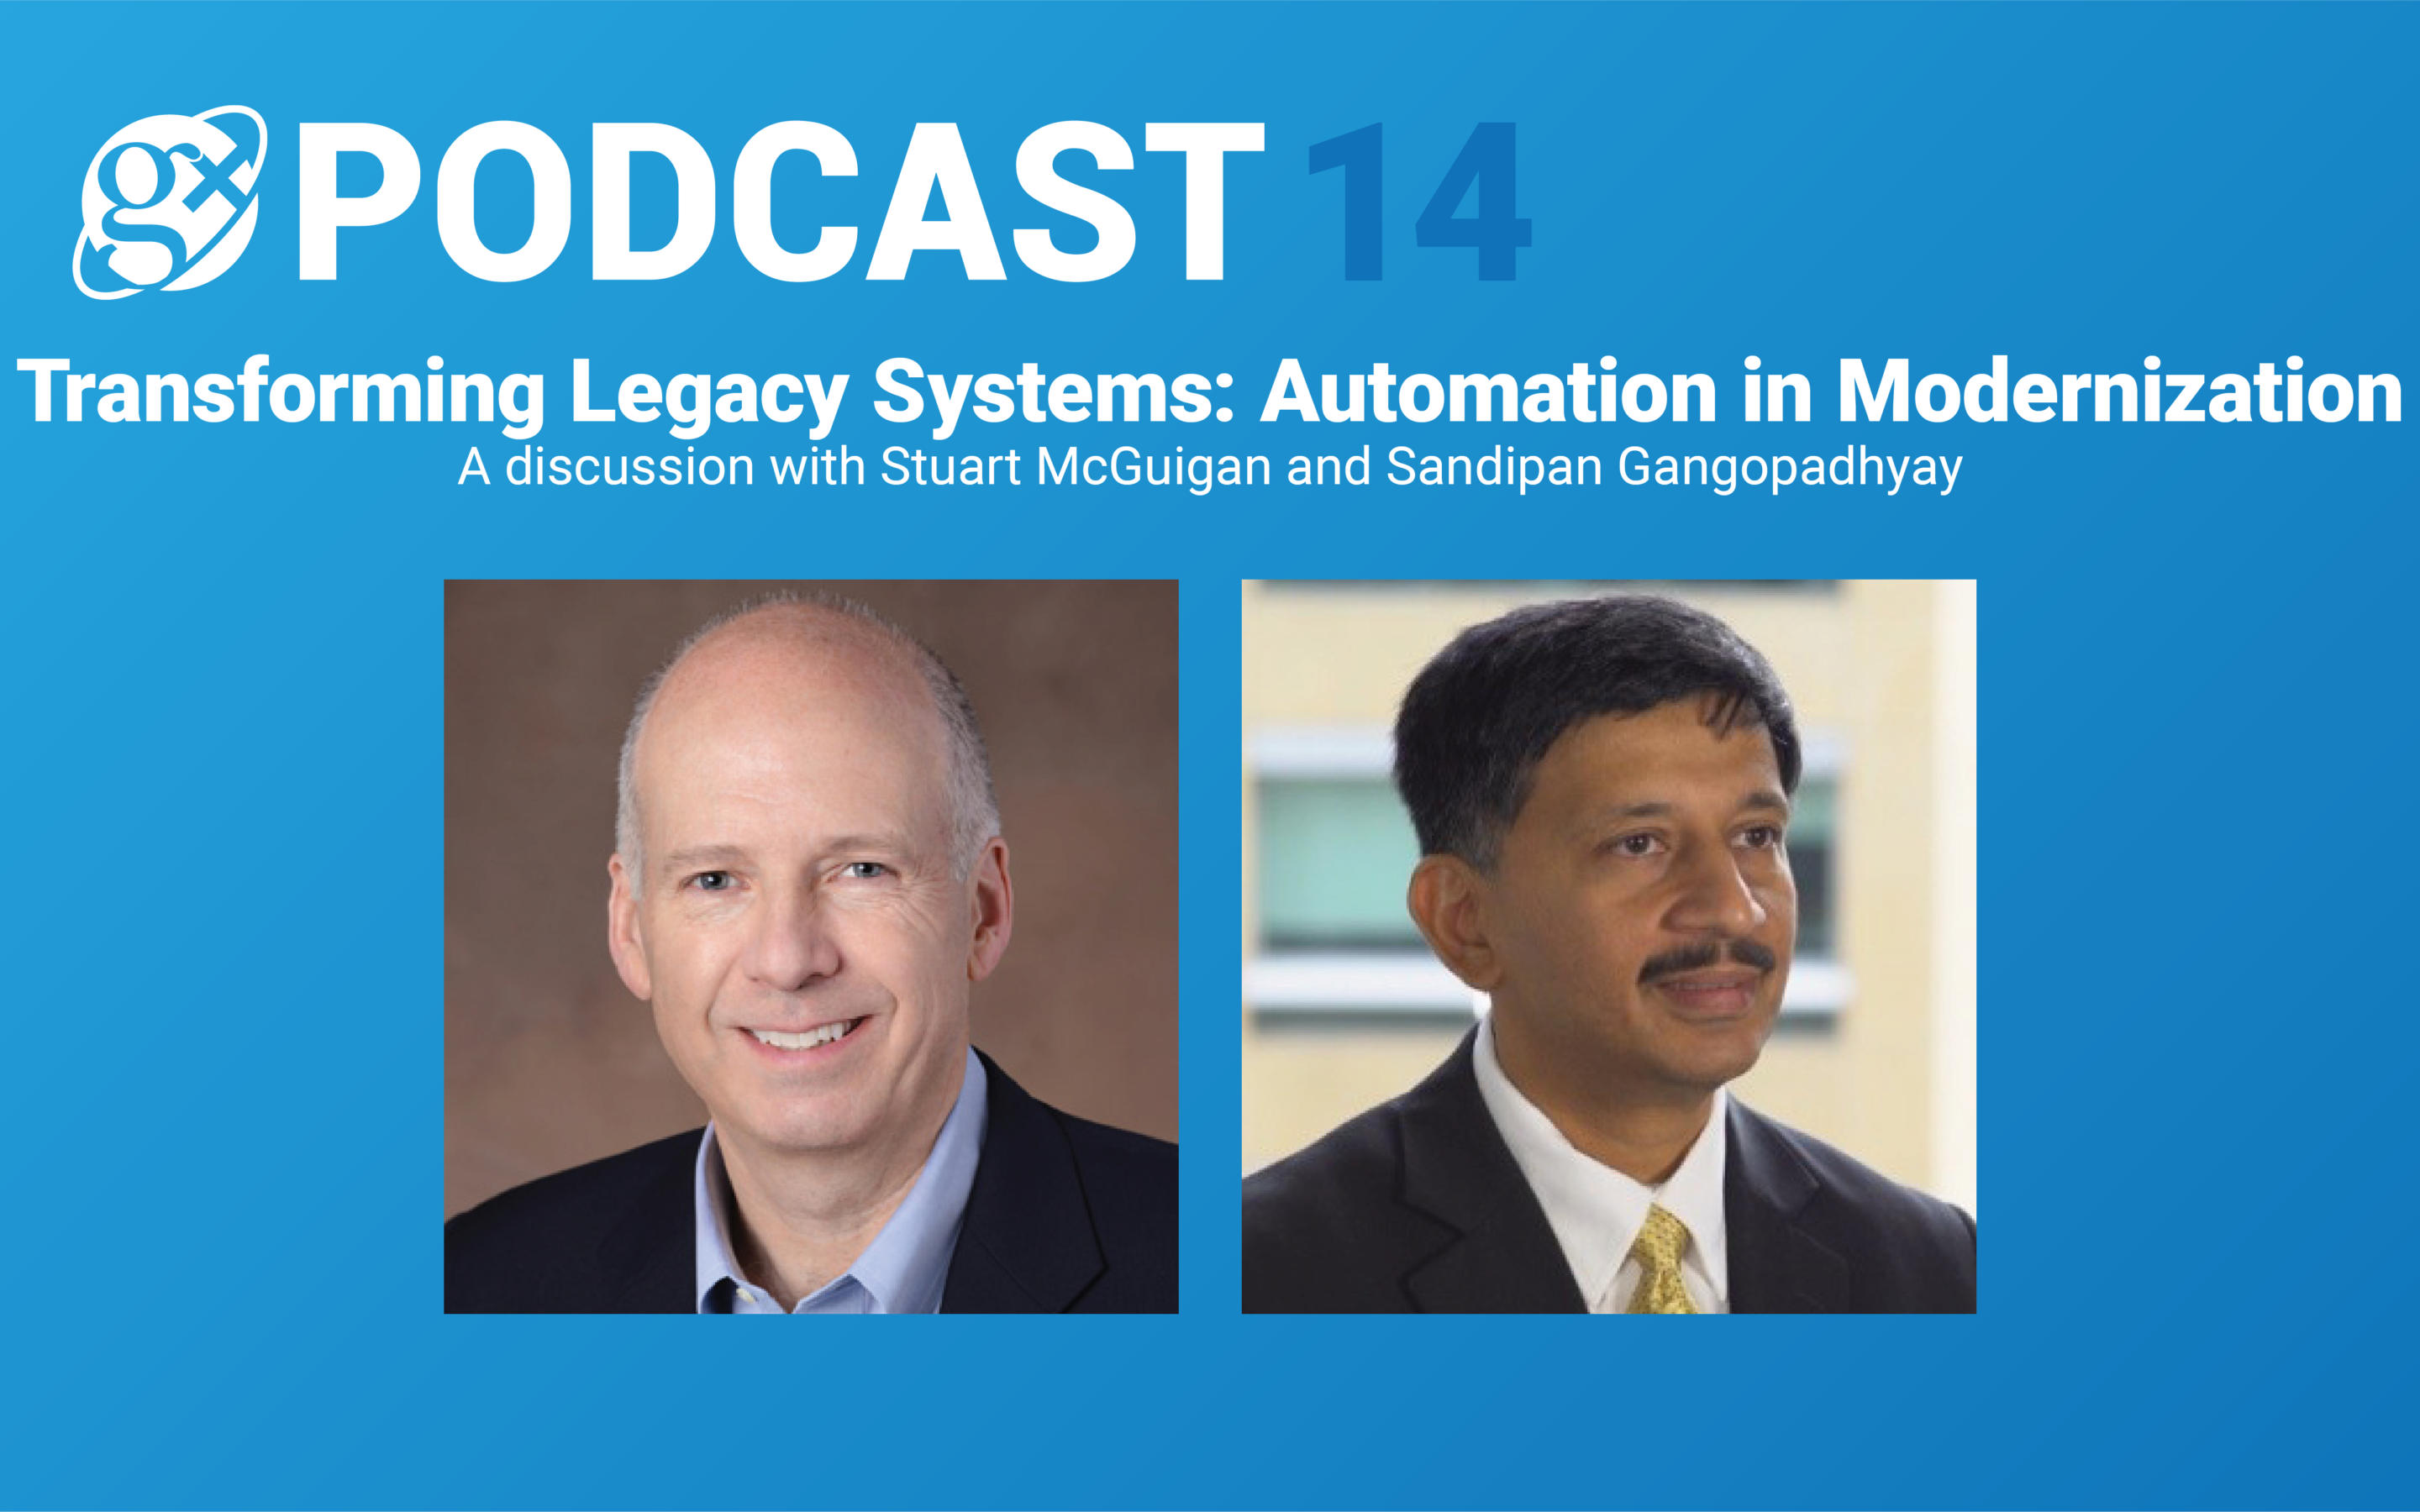 Gx Podcast 14: Transforming Legacy Systems: Automation in Modernization